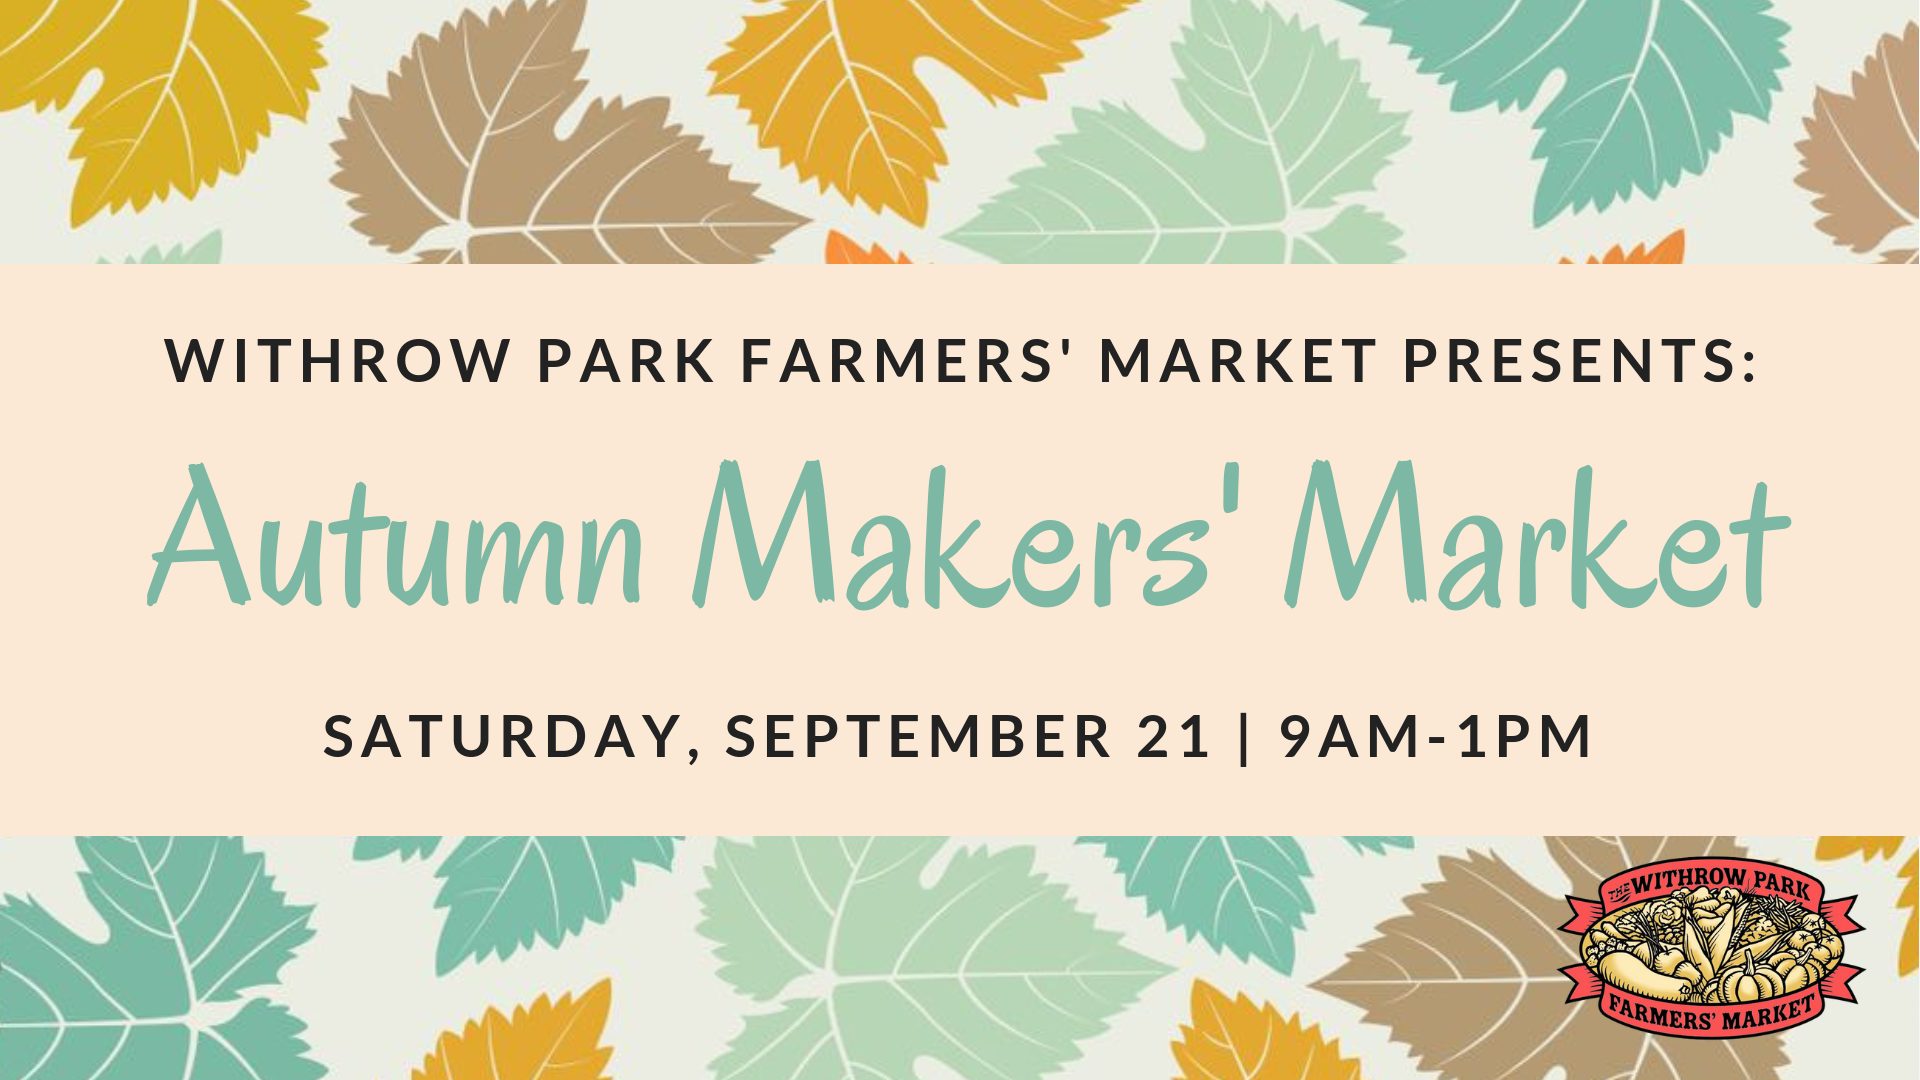 Autumn Makers Market